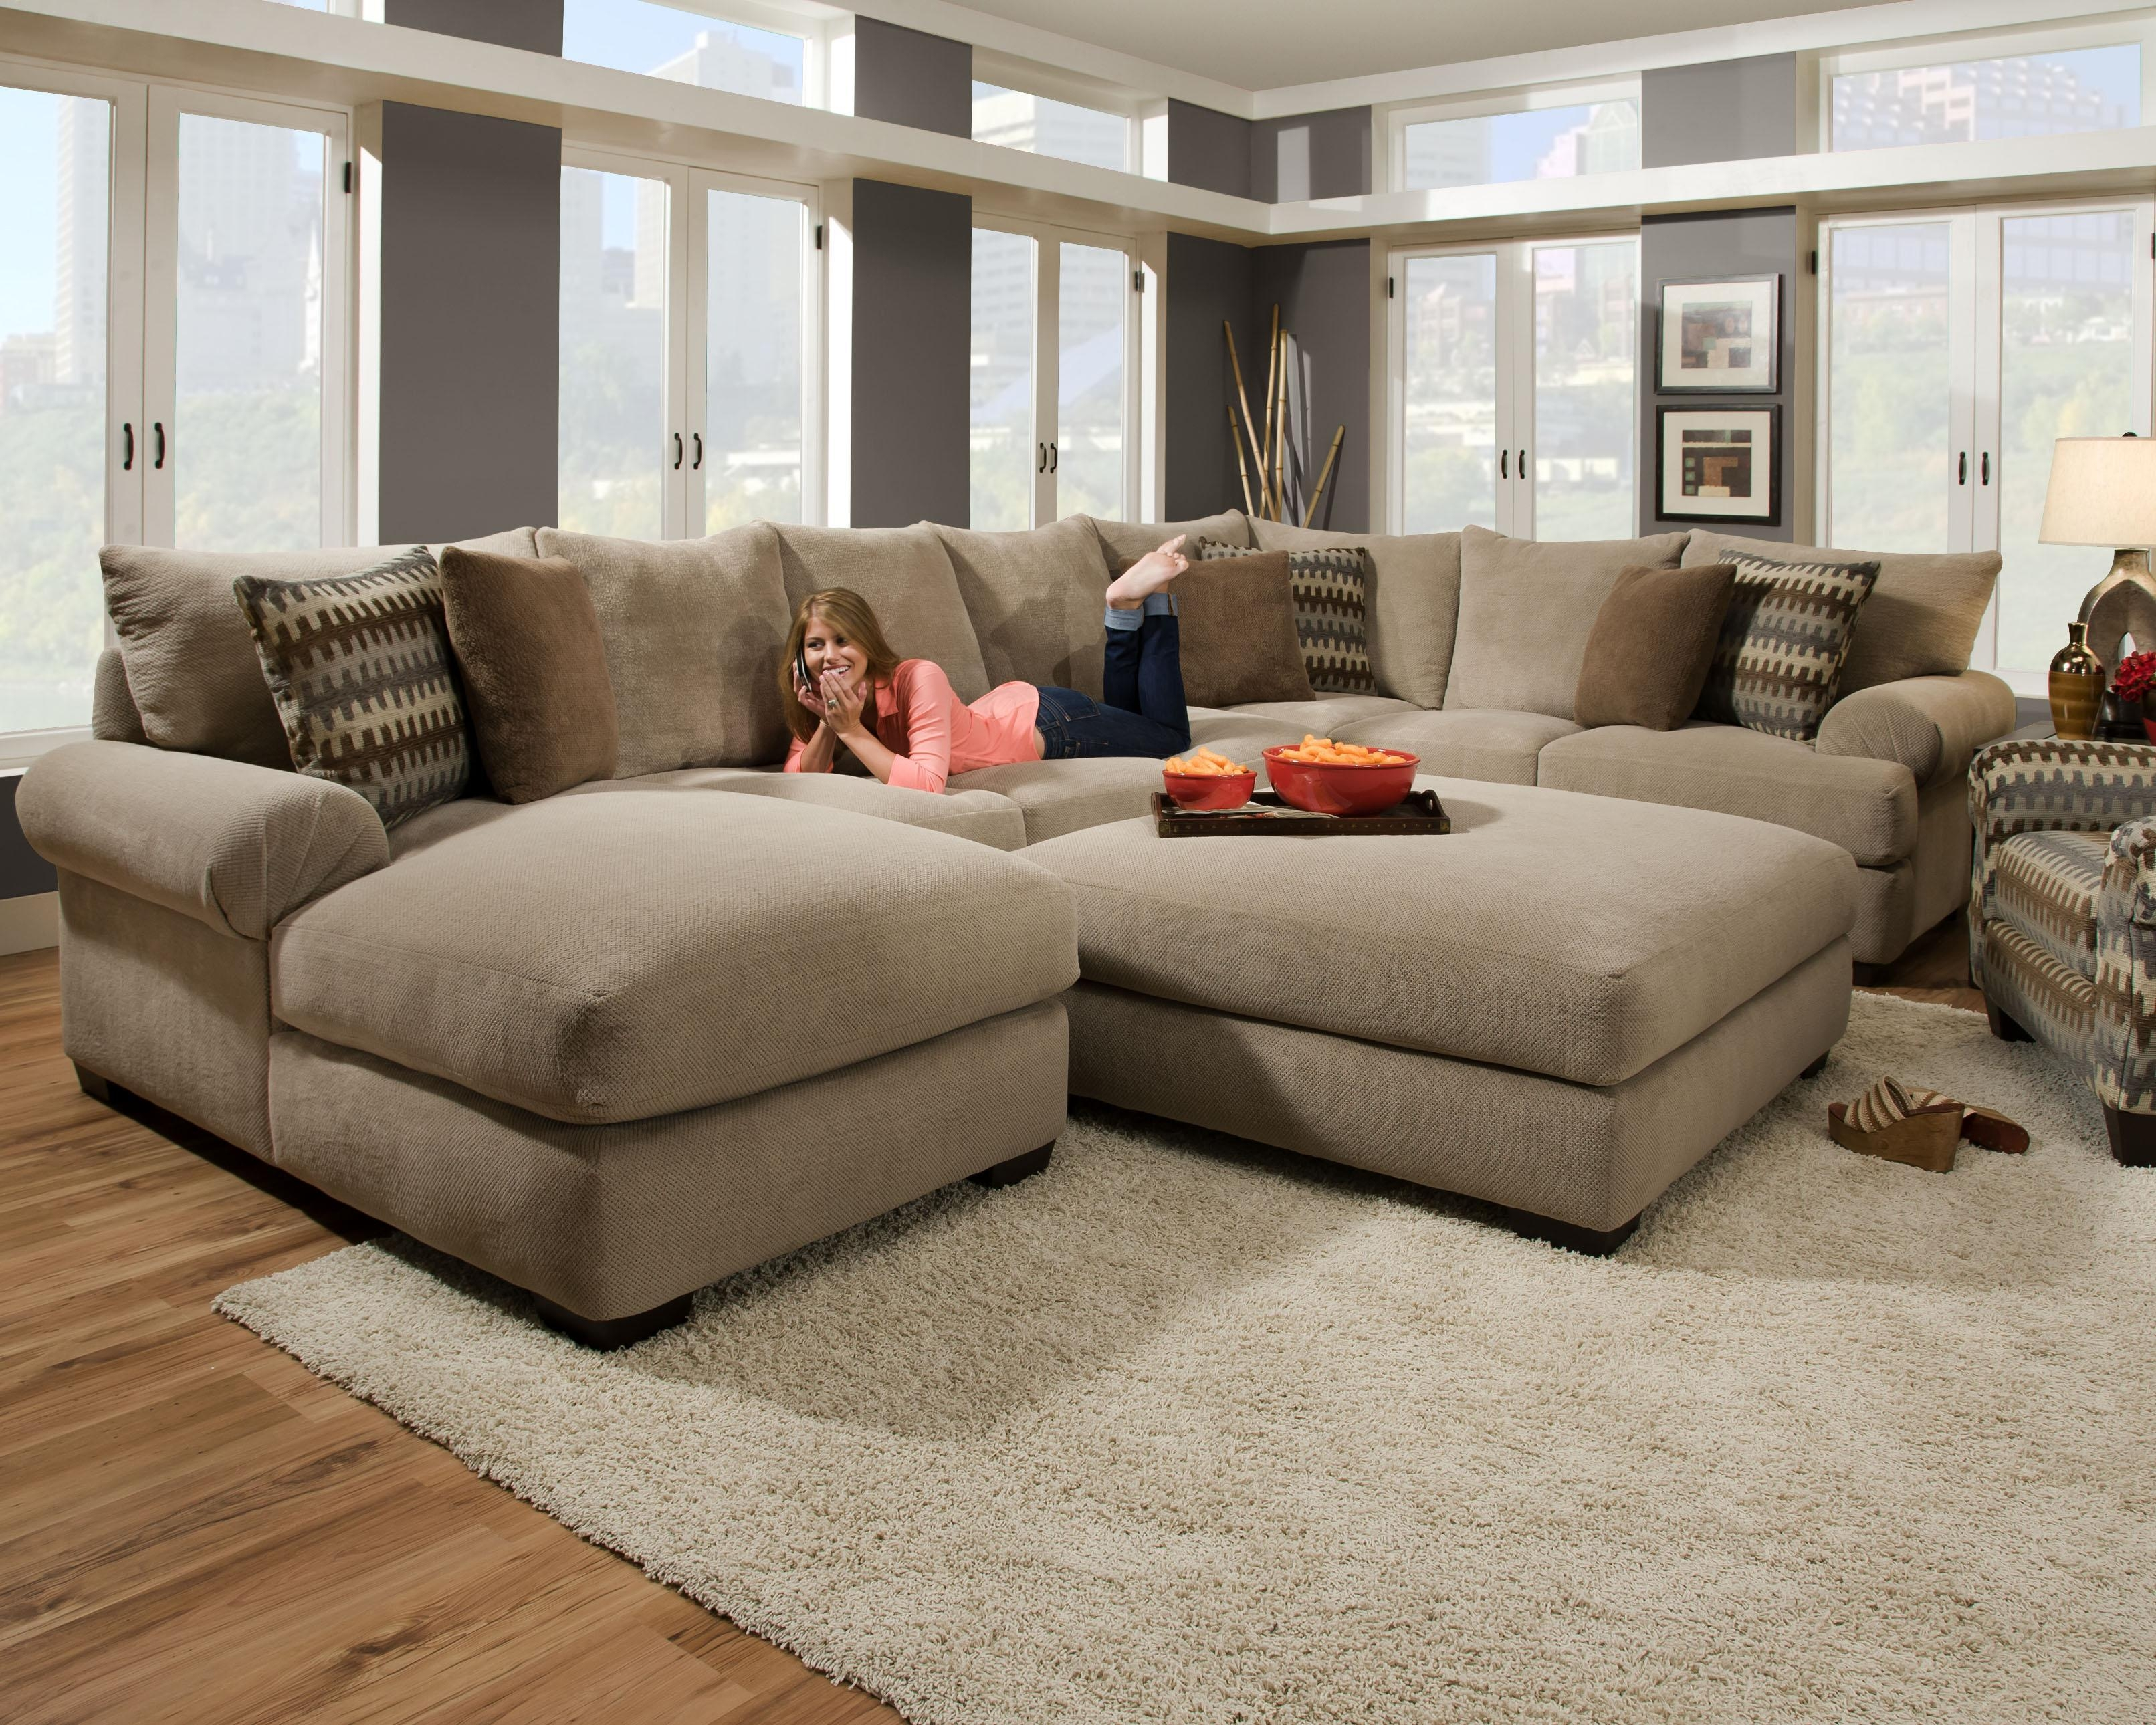 Oversized Sectional Sofas Canada | Tehranmix Decoration Regarding Oversized Sectional (Image 14 of 20)